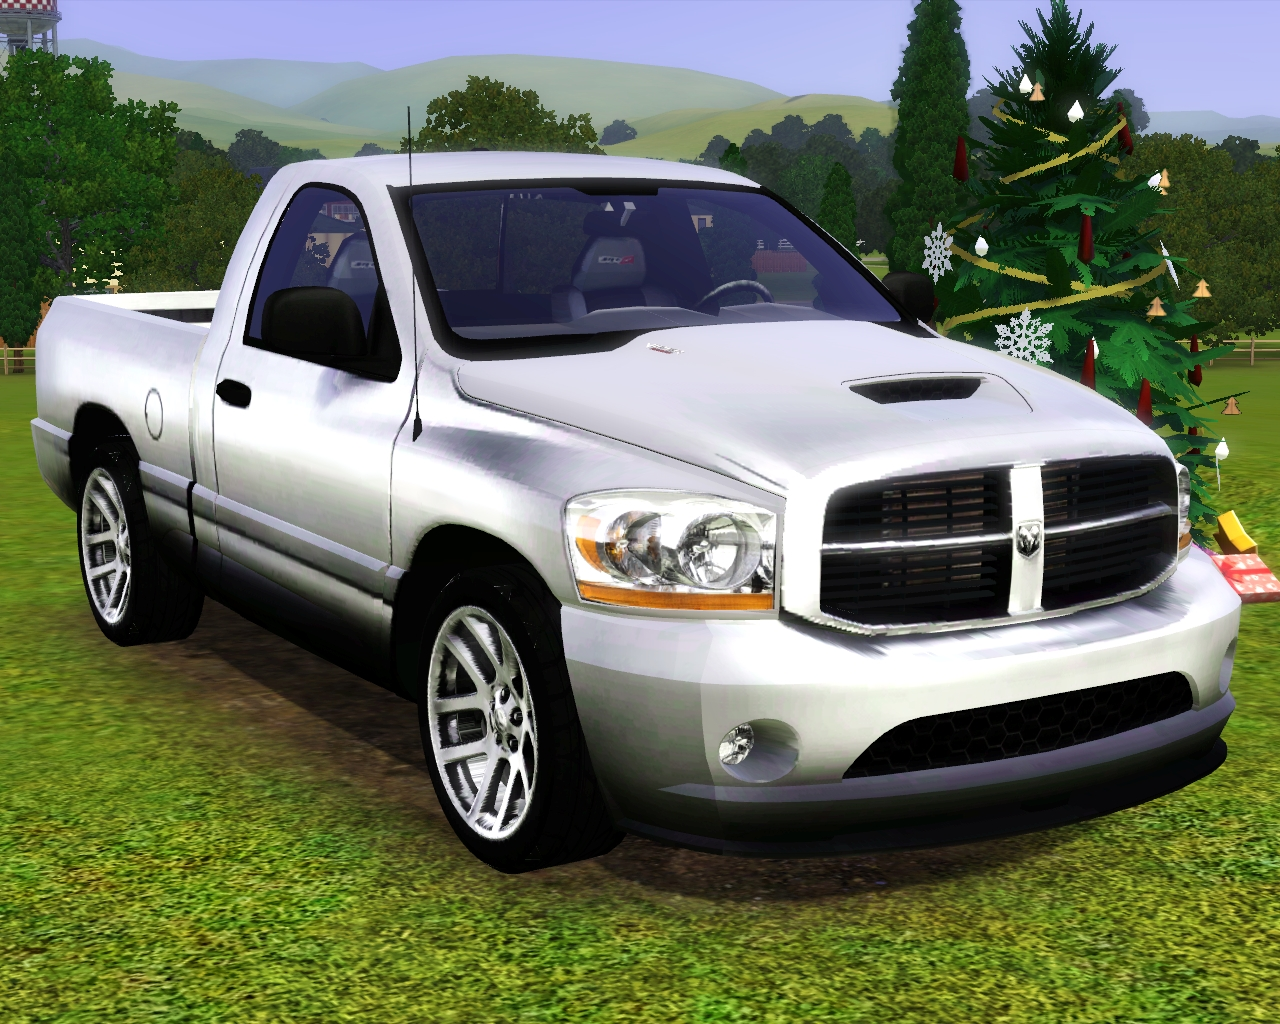 2006 Dodge Ram SRT-10 by Fresh-Prince